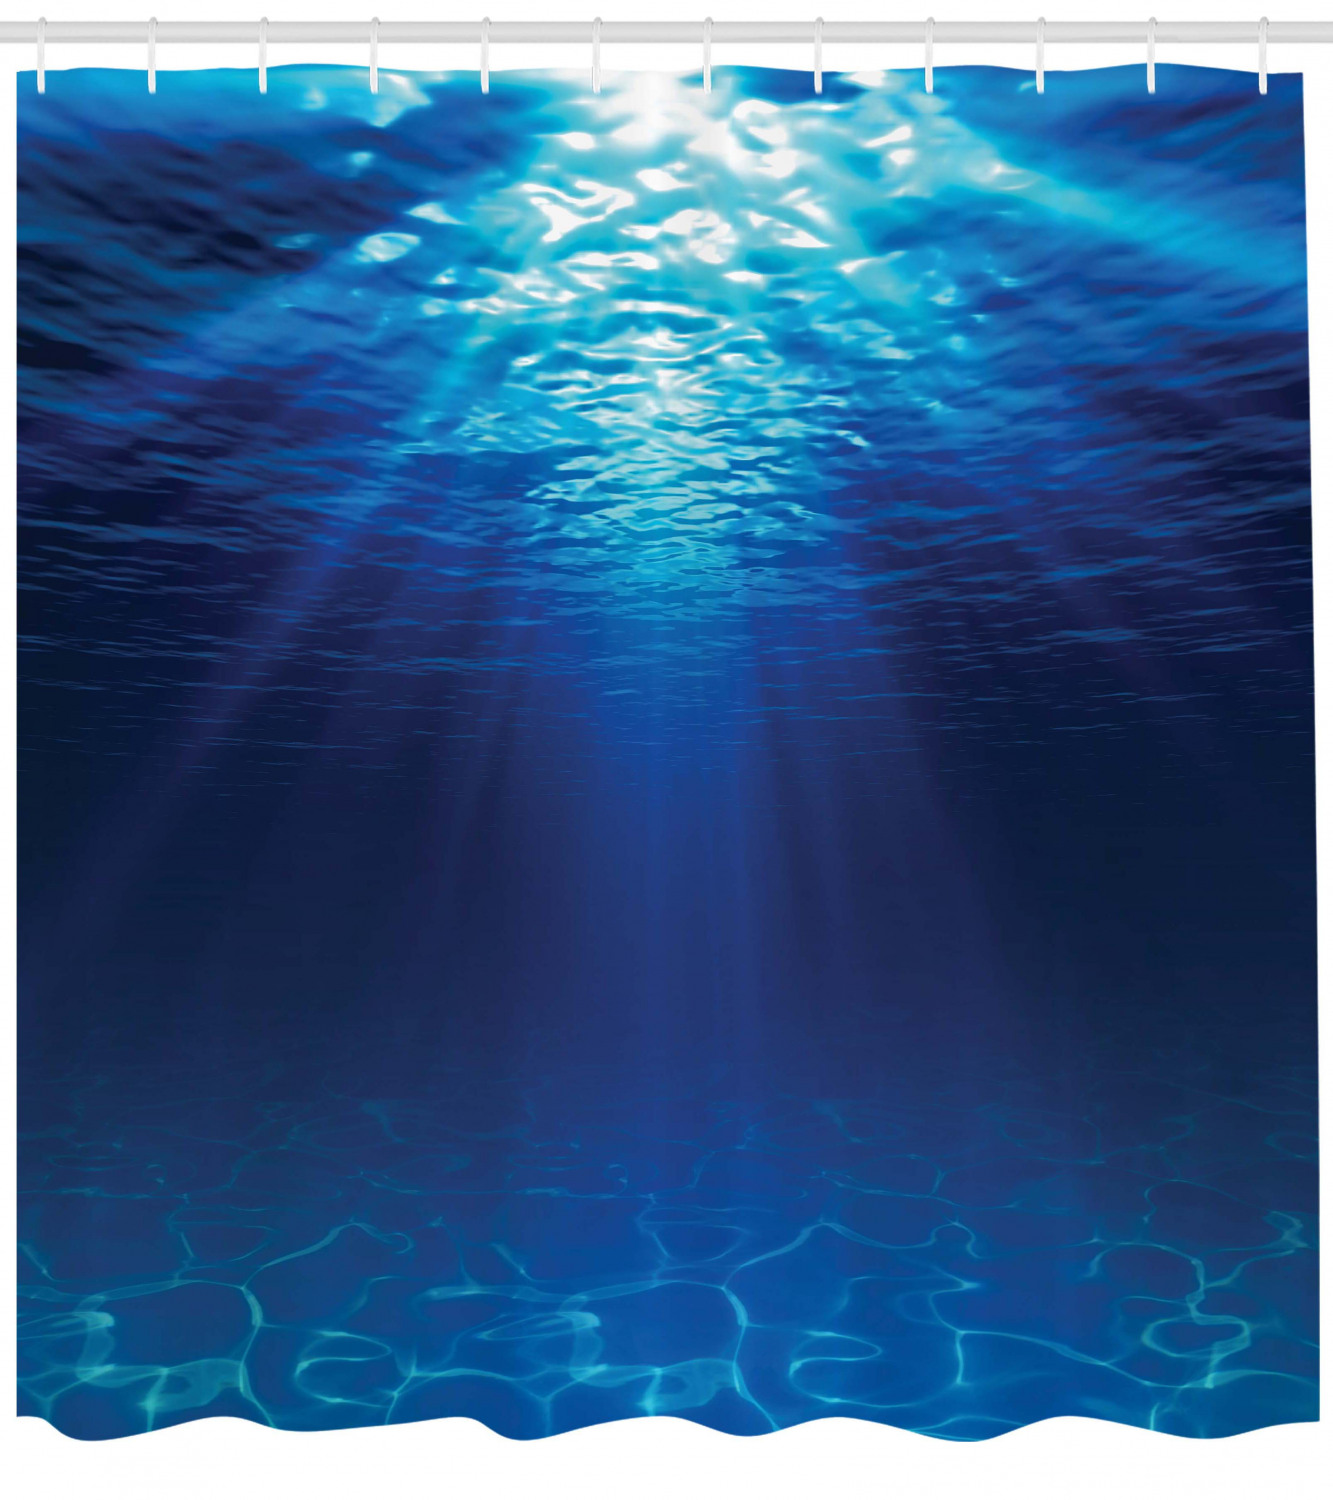 Ocean Shower Curtain, Underwater View With Sandy Seabed